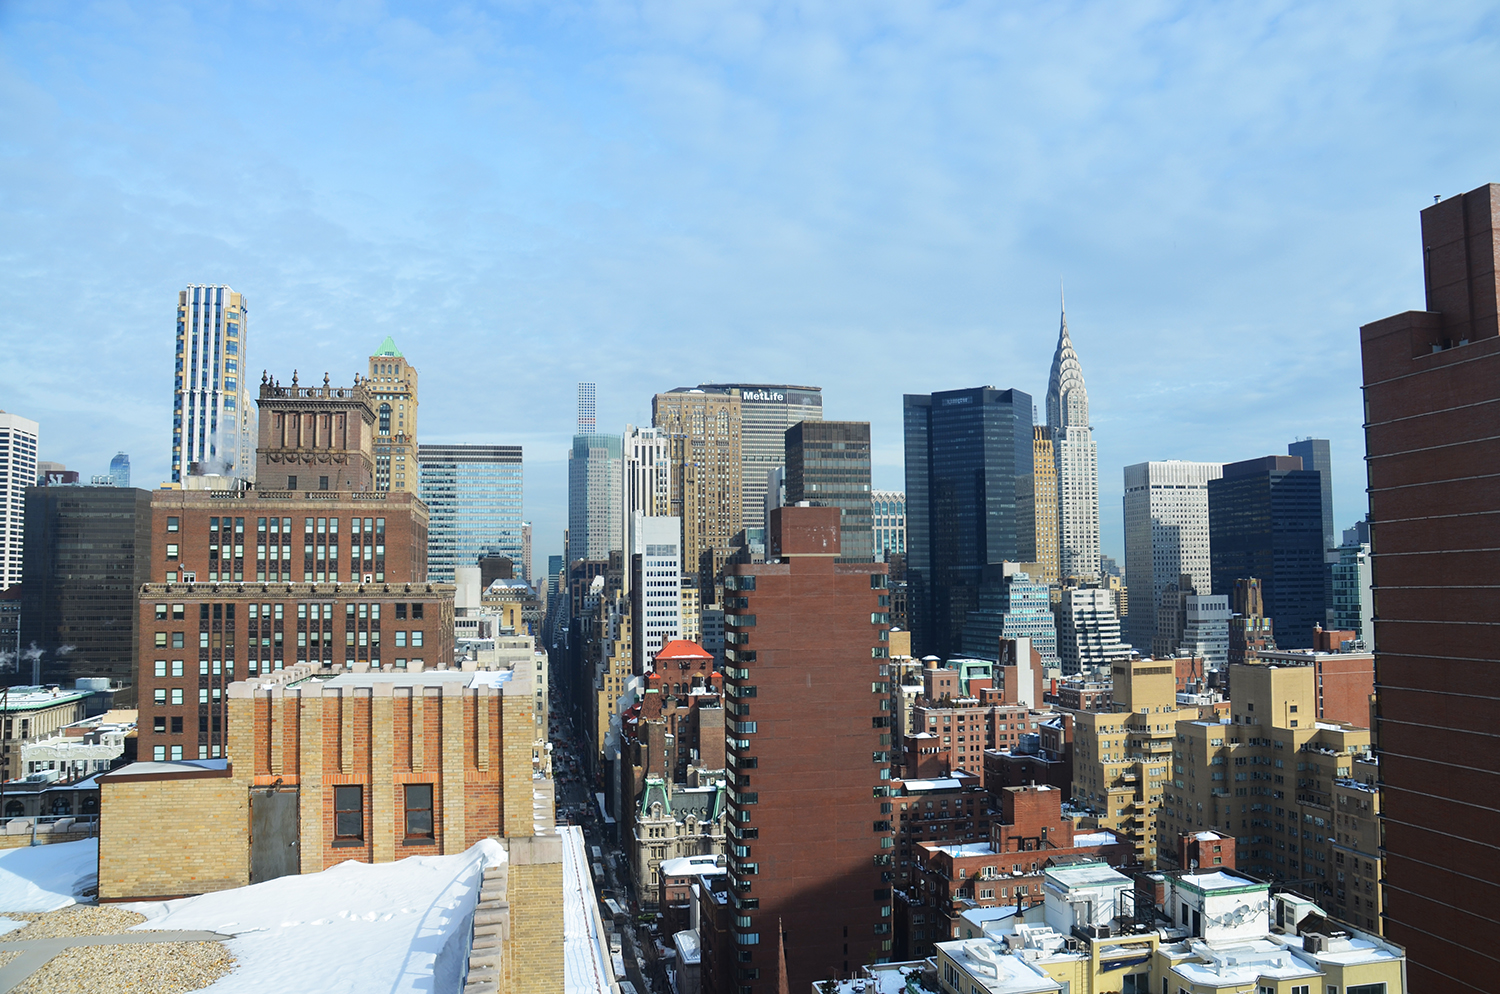 The view from 172 Madison Avenue.